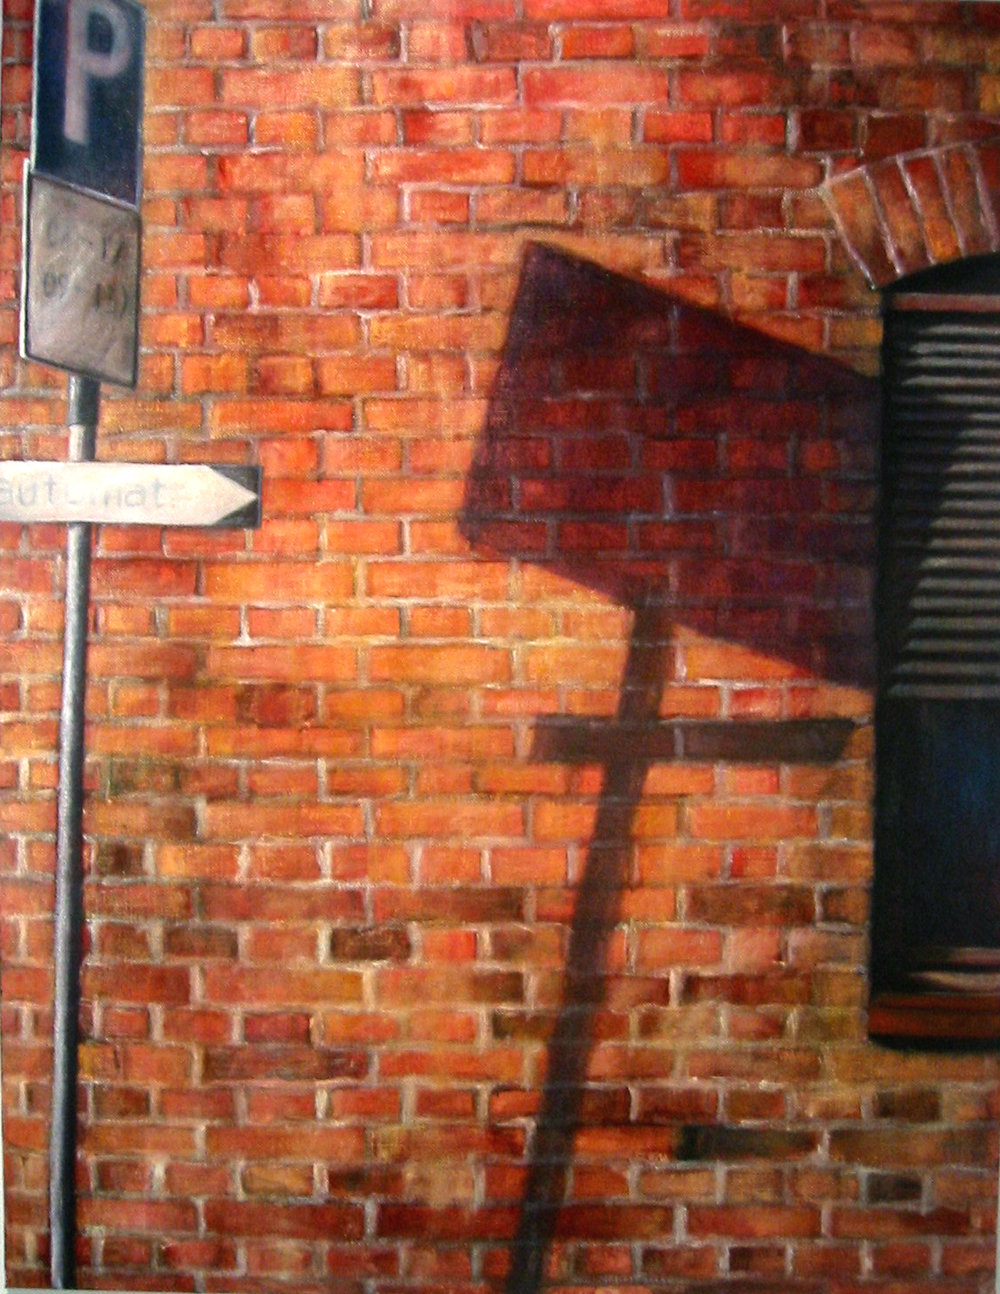 Exterior with parking sign  Oil on canvas 130x100 cm 2005